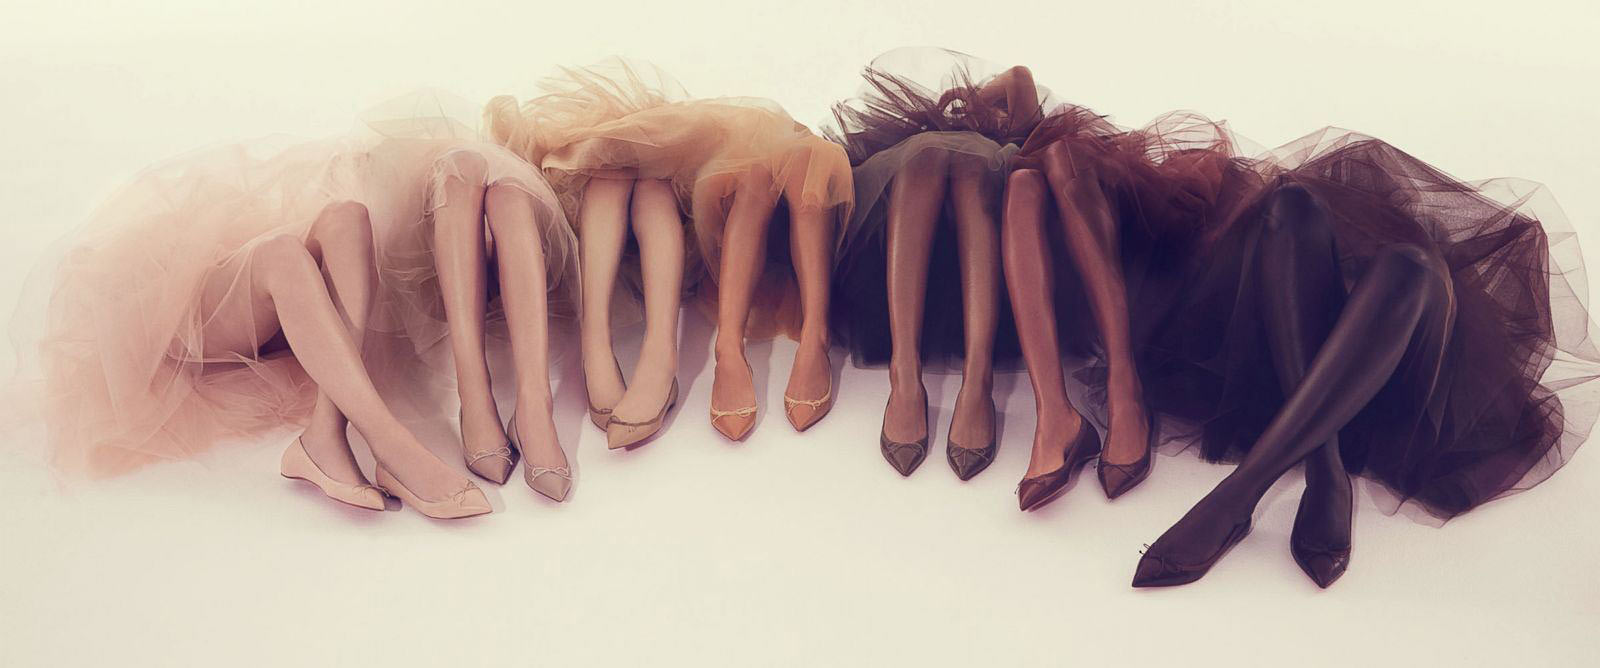 a-nude-for-every-woman-christian-louboutin-ballet-flats-ad-campaign-different-women-girls-dark-skin-tone-color